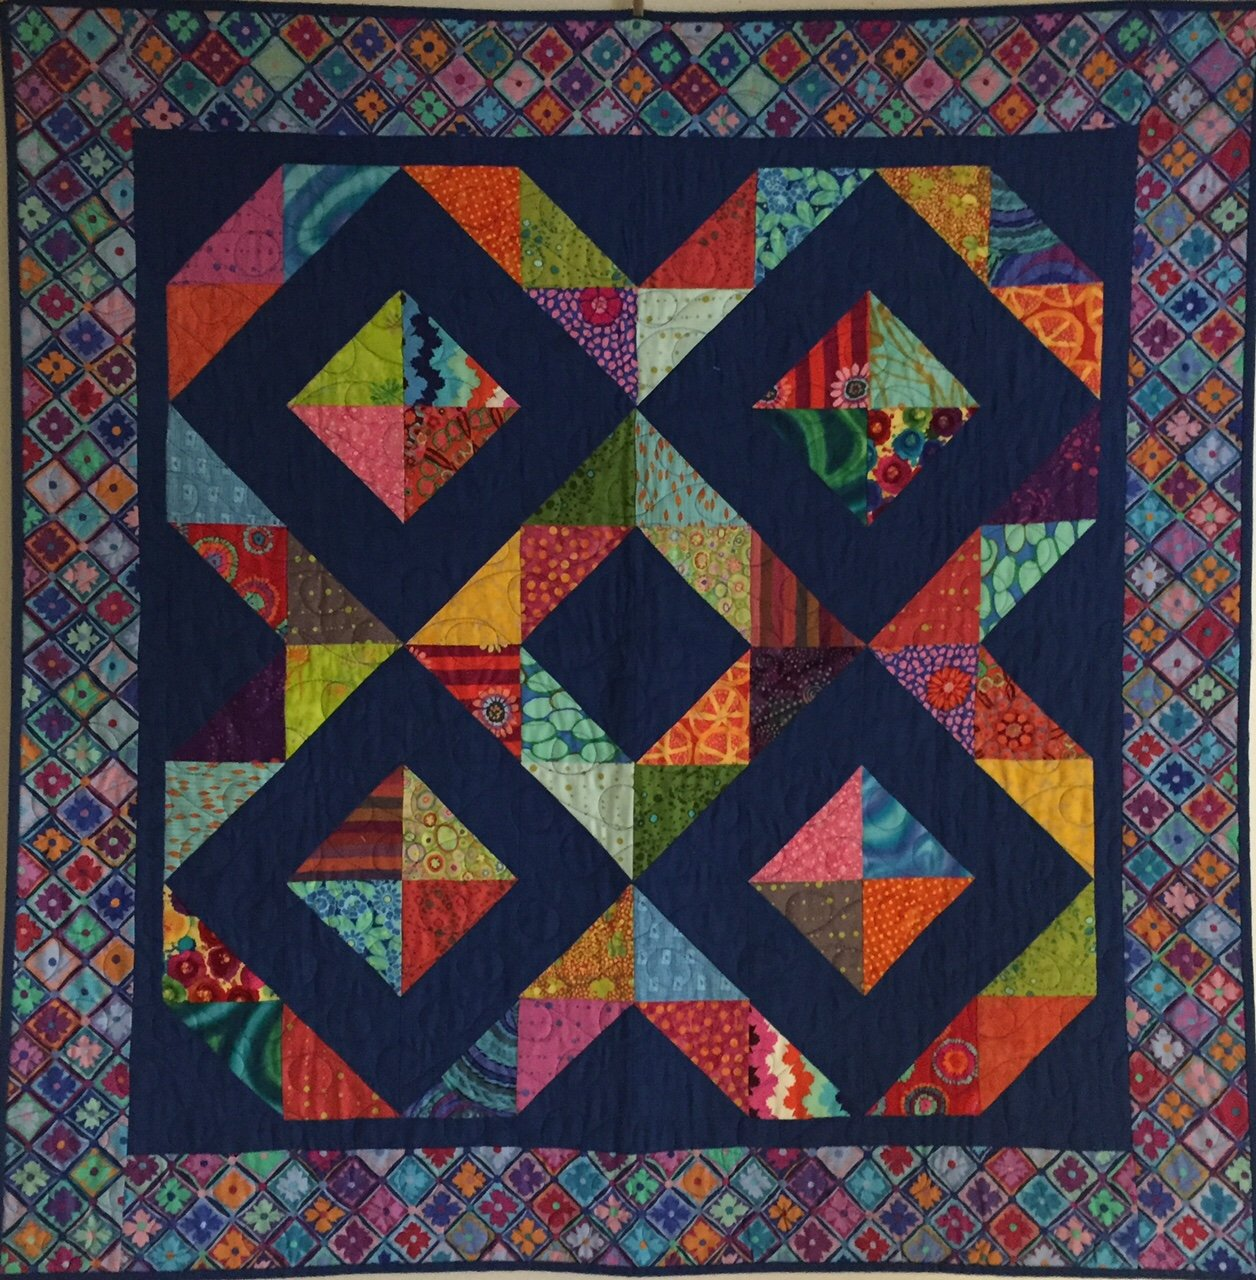 Five Square Illusion quilt